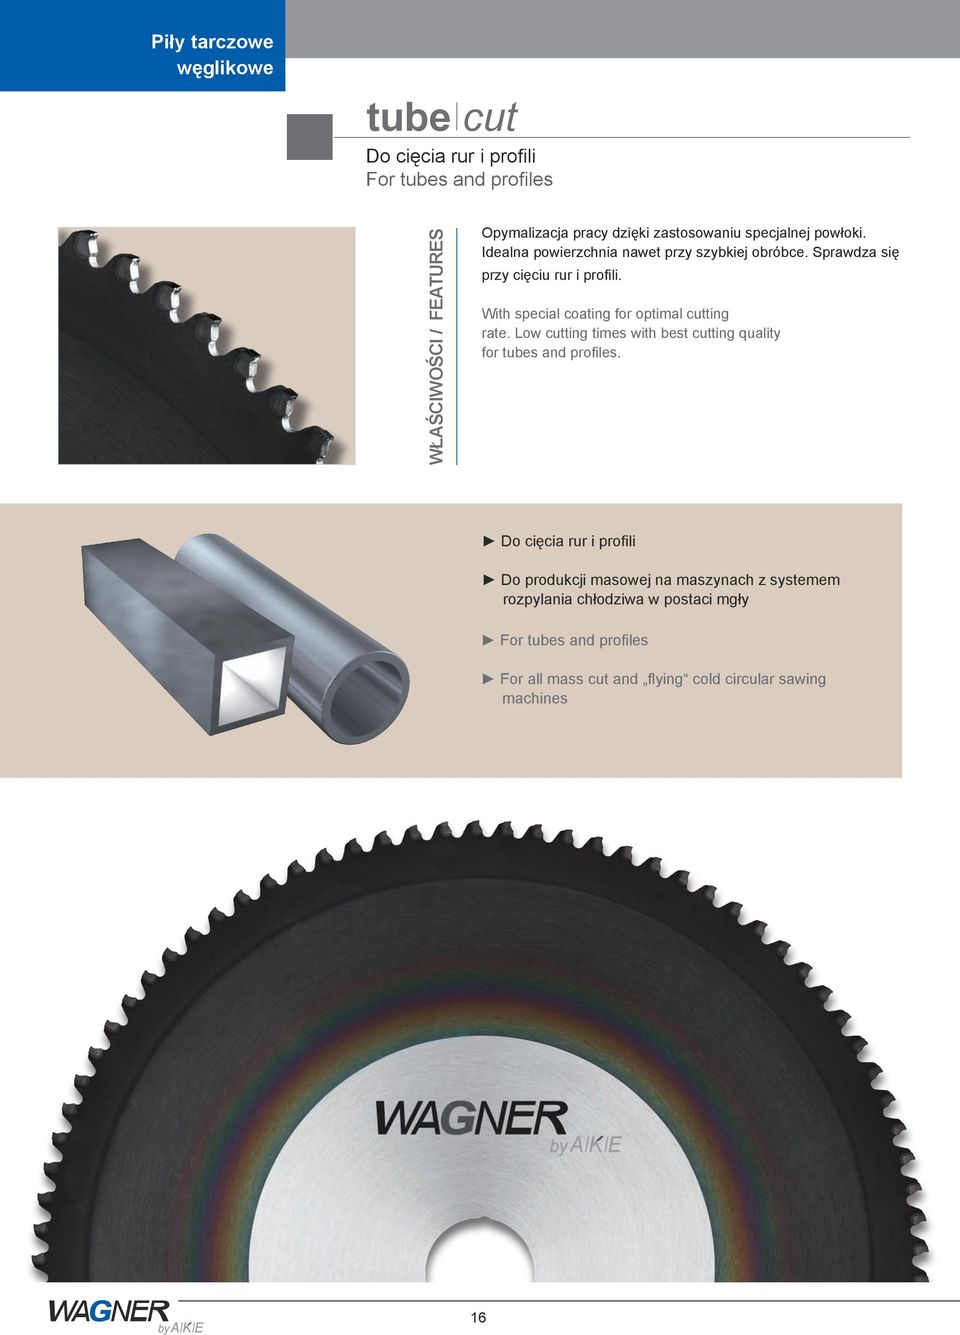 With special coating for optimal cutting rate. Low cutting times with best cutting quality for tubes and profiles.